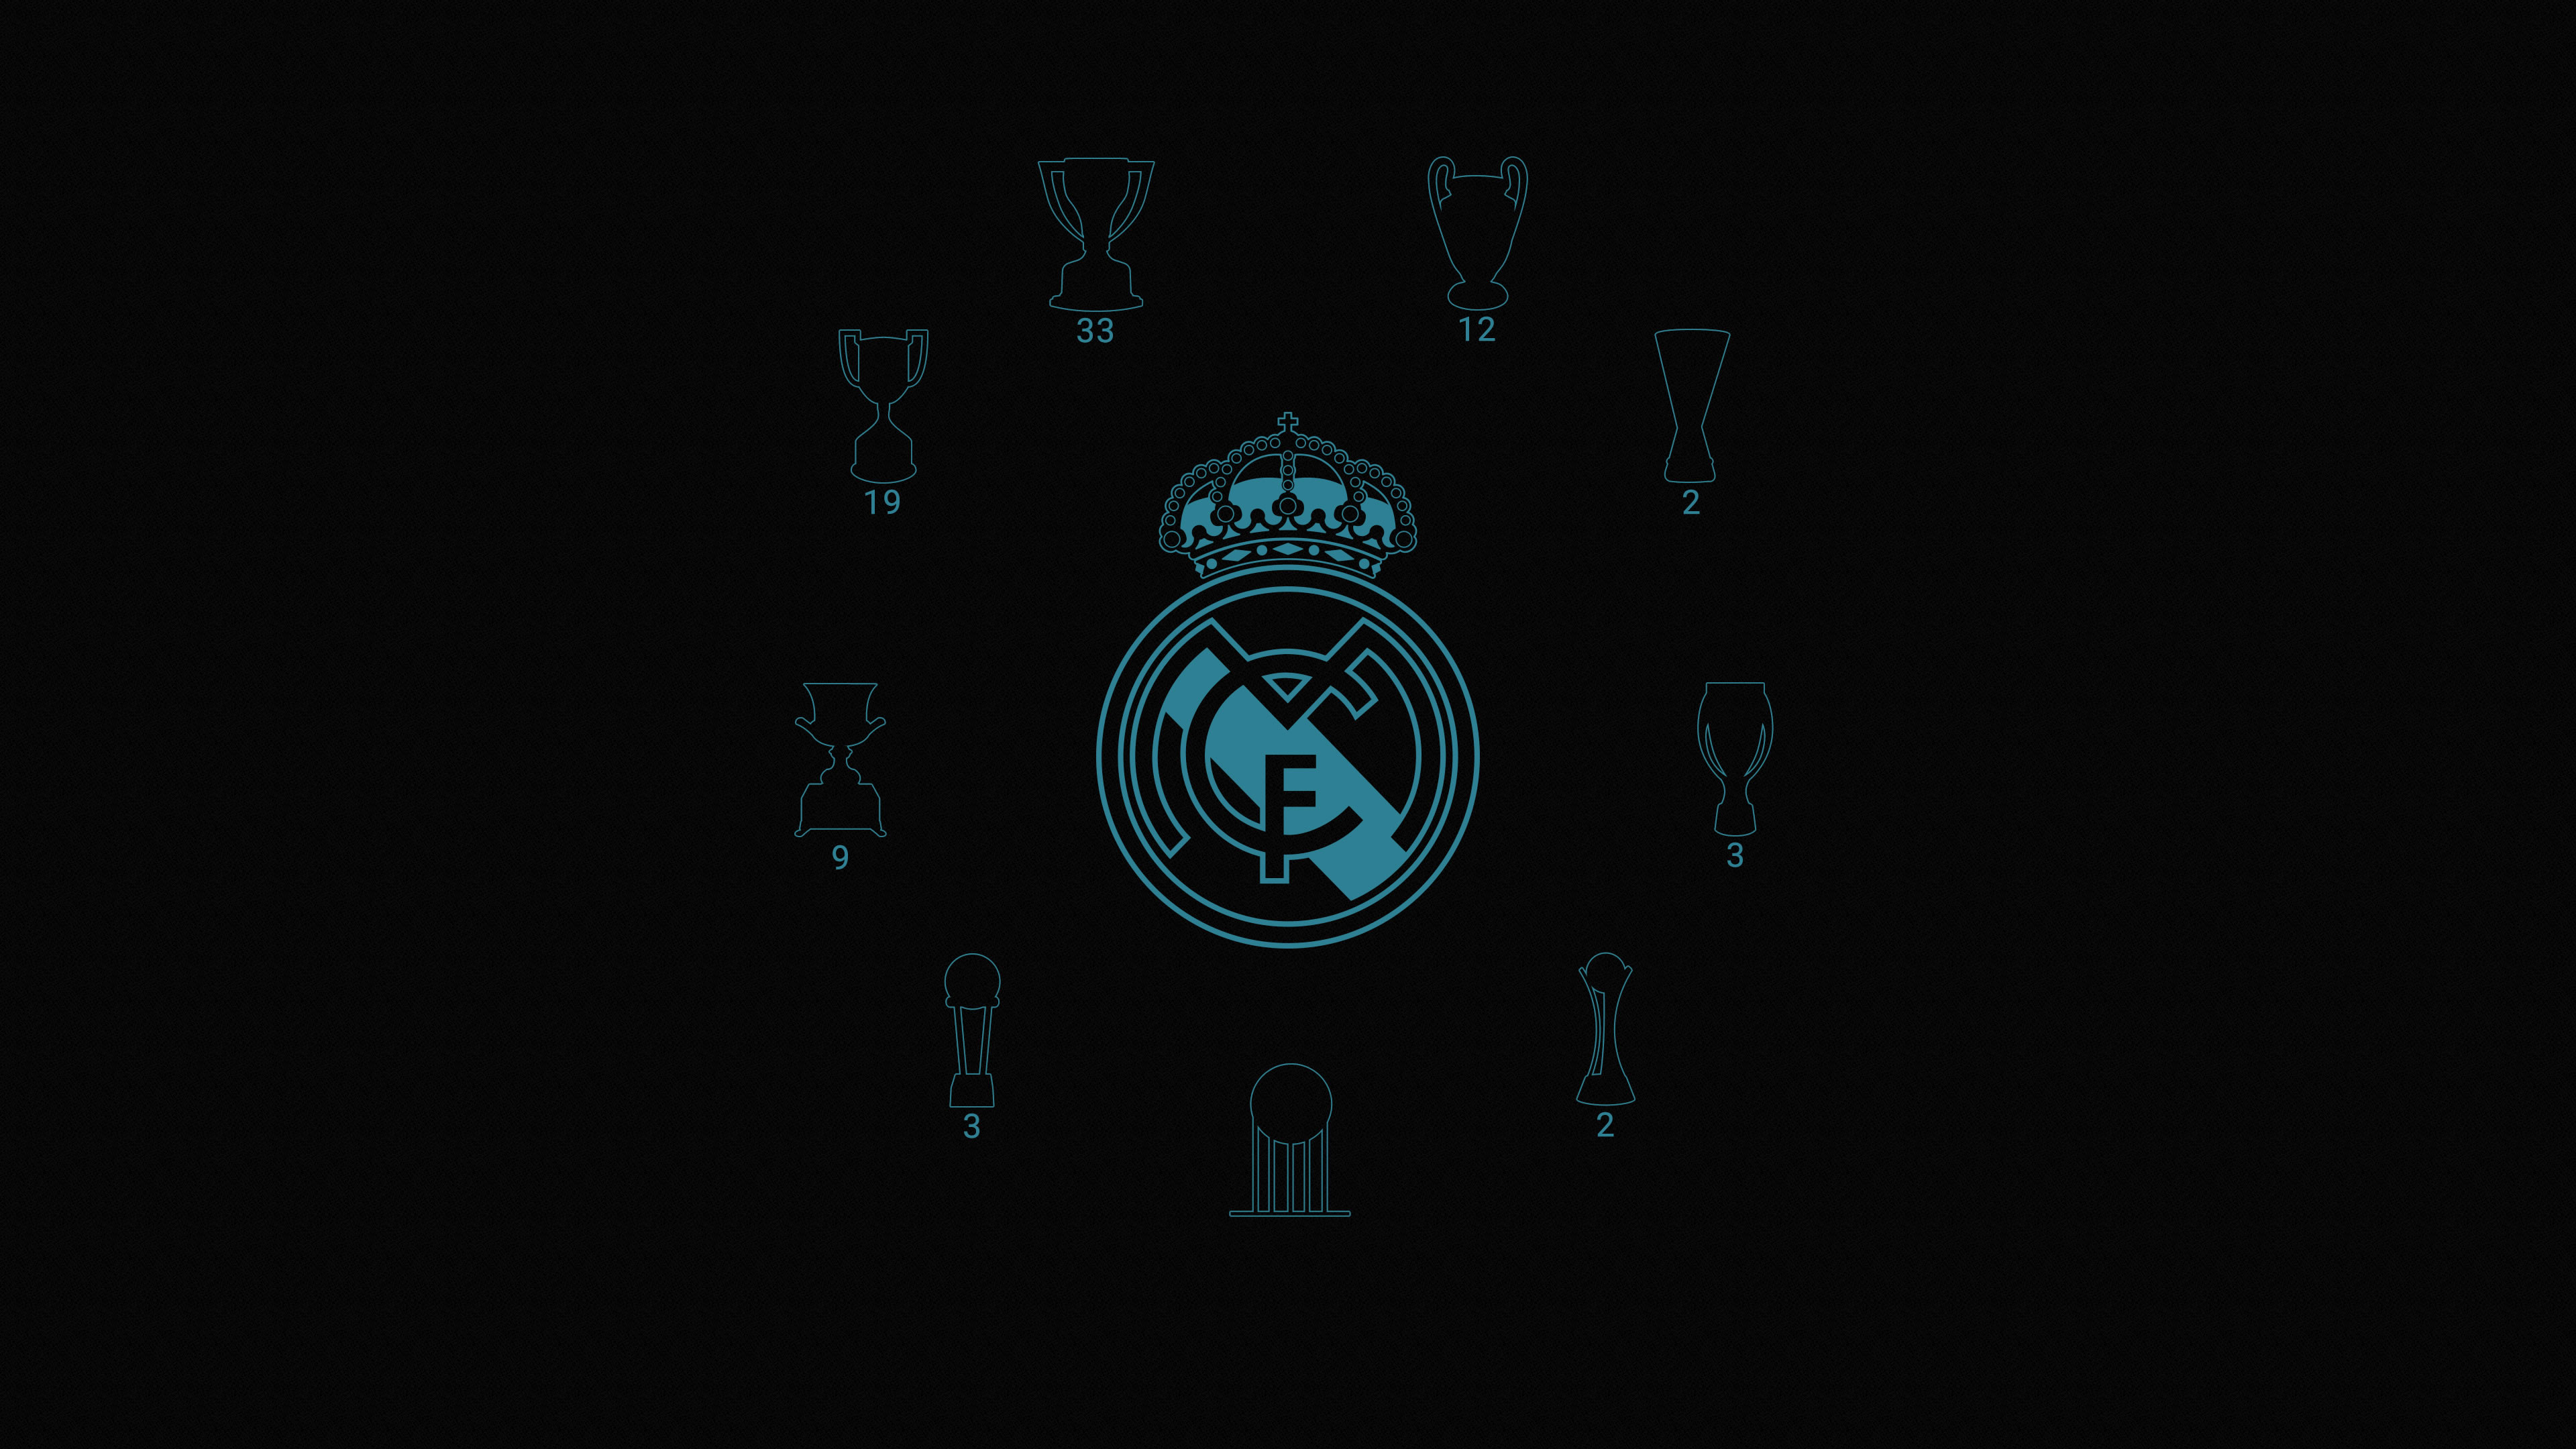 real madrid hd wallpaper 2018 (64+ images)